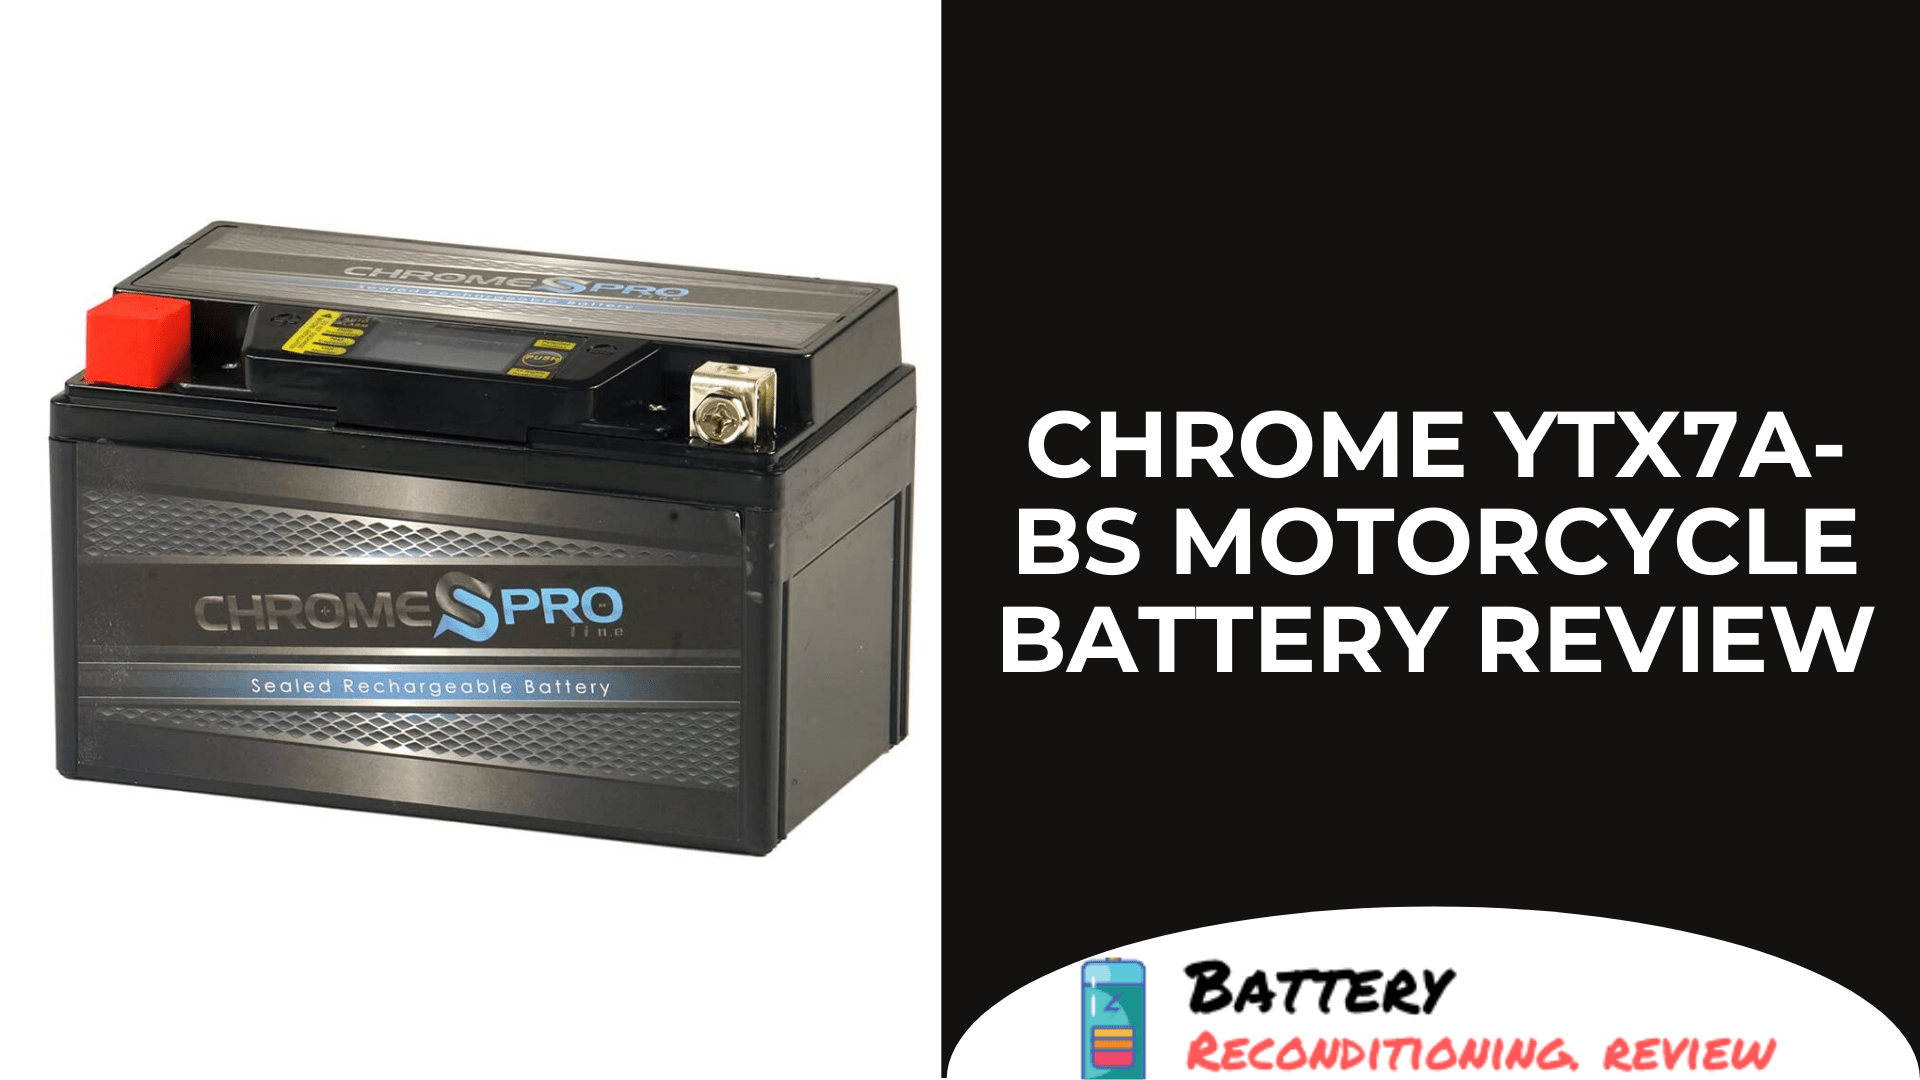 Chrome YTX7A-BS Motorcycle Battery Review